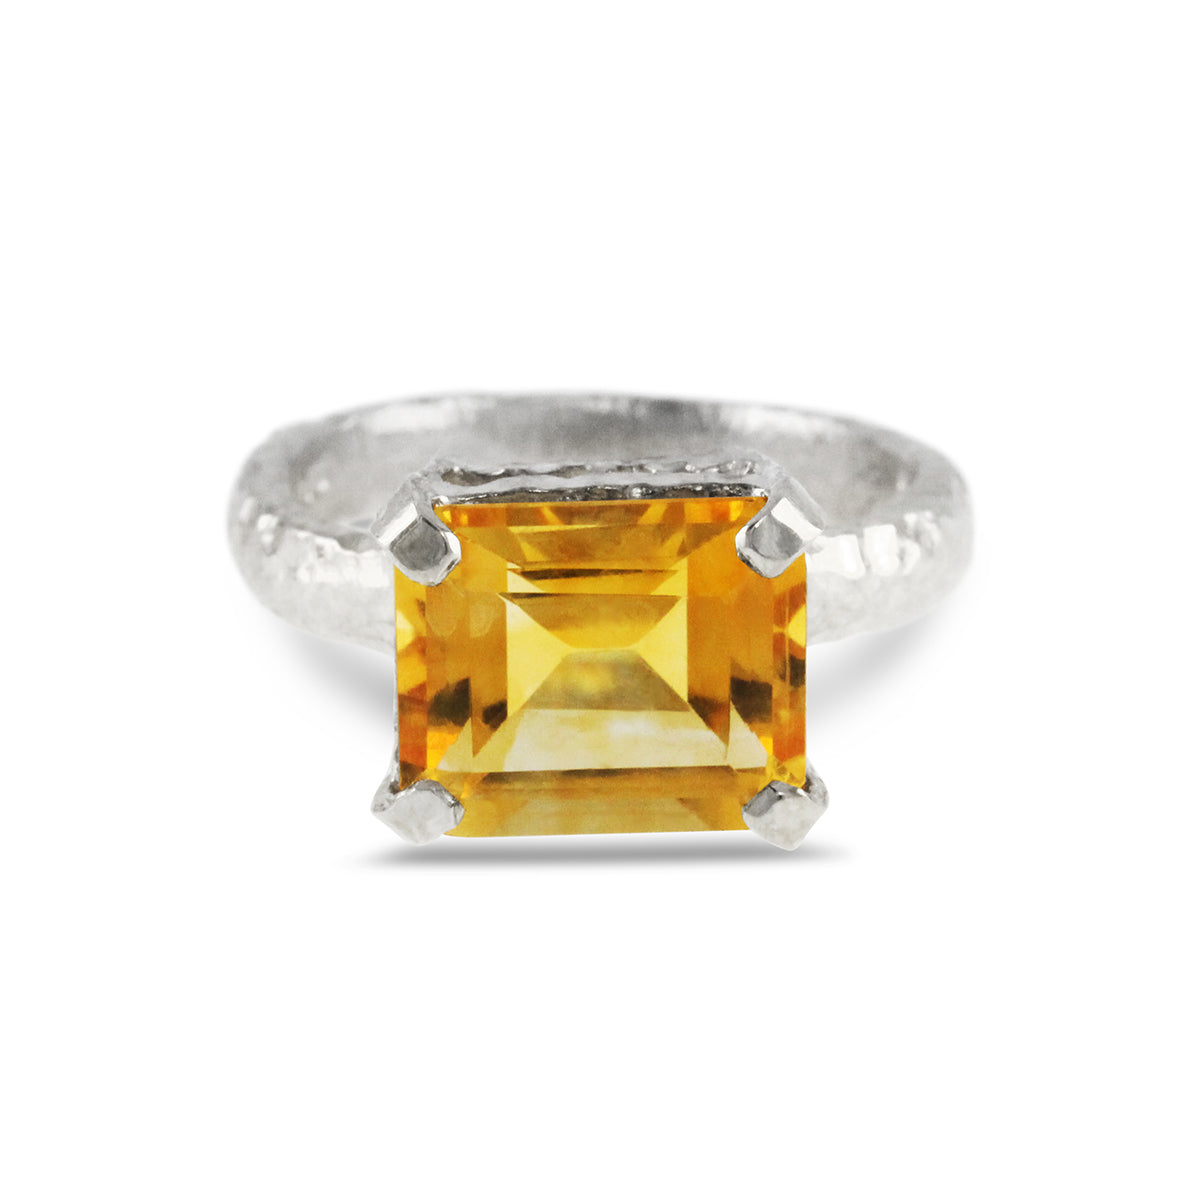 Sterling silver handcrafted ring set with  rectangle citrine gemstone. - Paul Magen